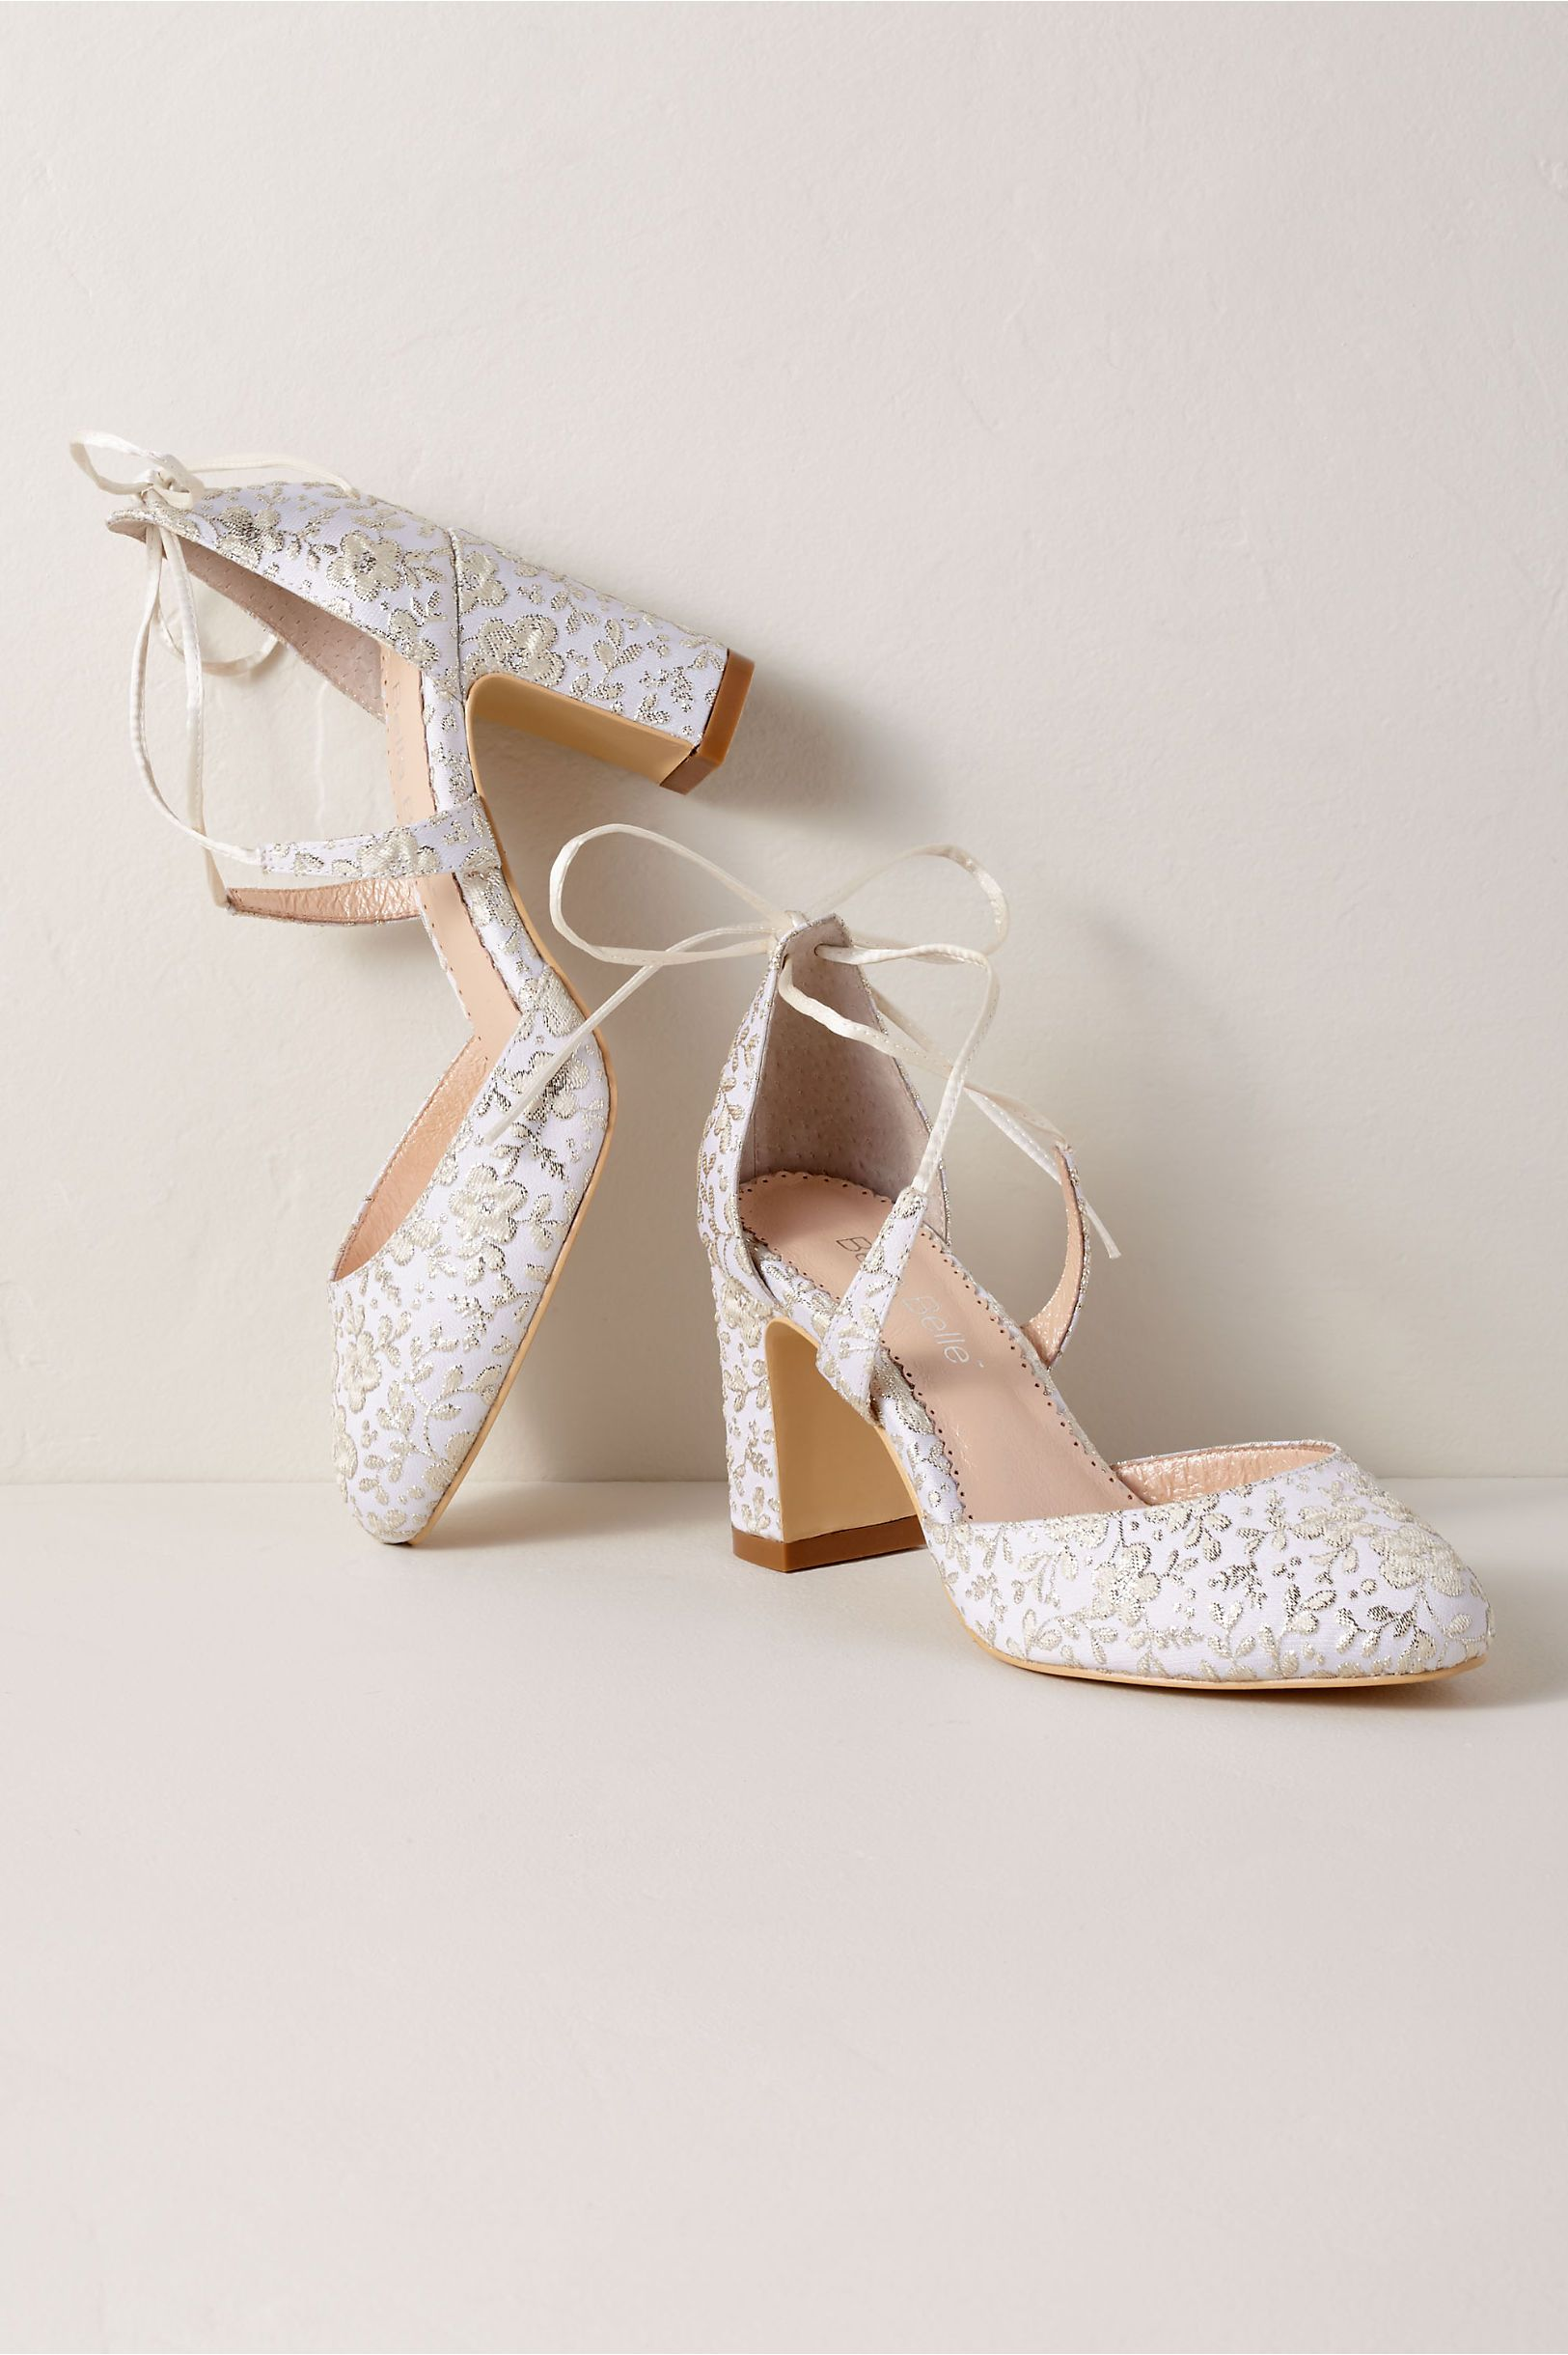 c18891e22a6f BHLDN's Bella Belle Sadie Block Heels in Oyster | Products in 2019 ...